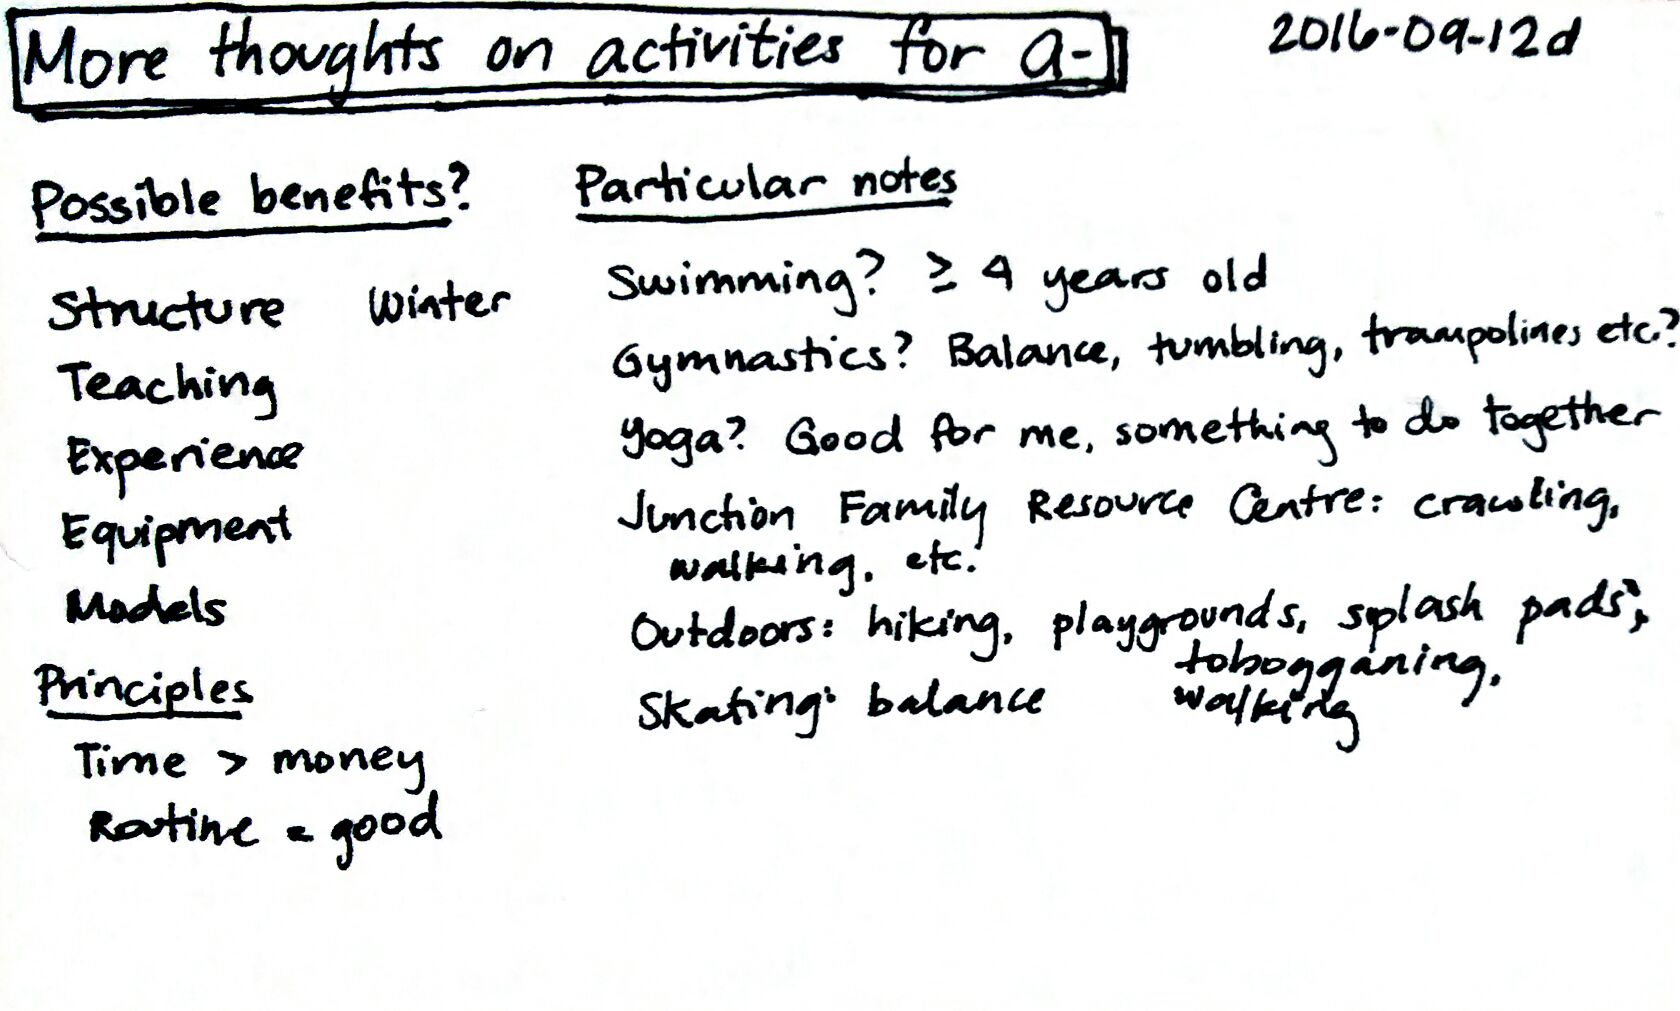 2016-09-12d More thoughts on activities for A- #parenting #activities.png